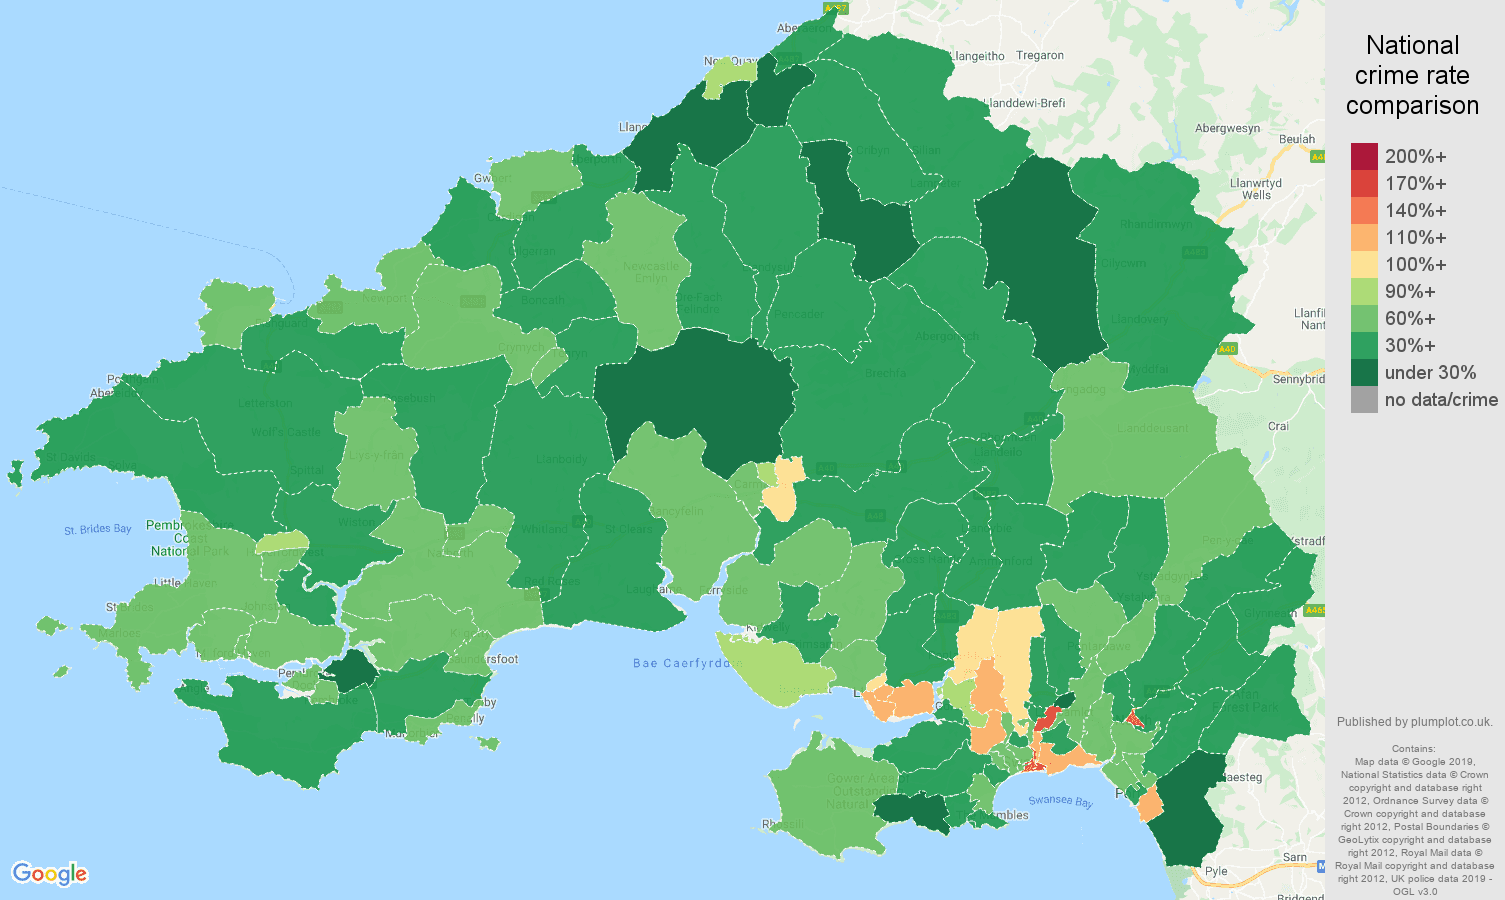 Swansea other theft crime rate comparison map